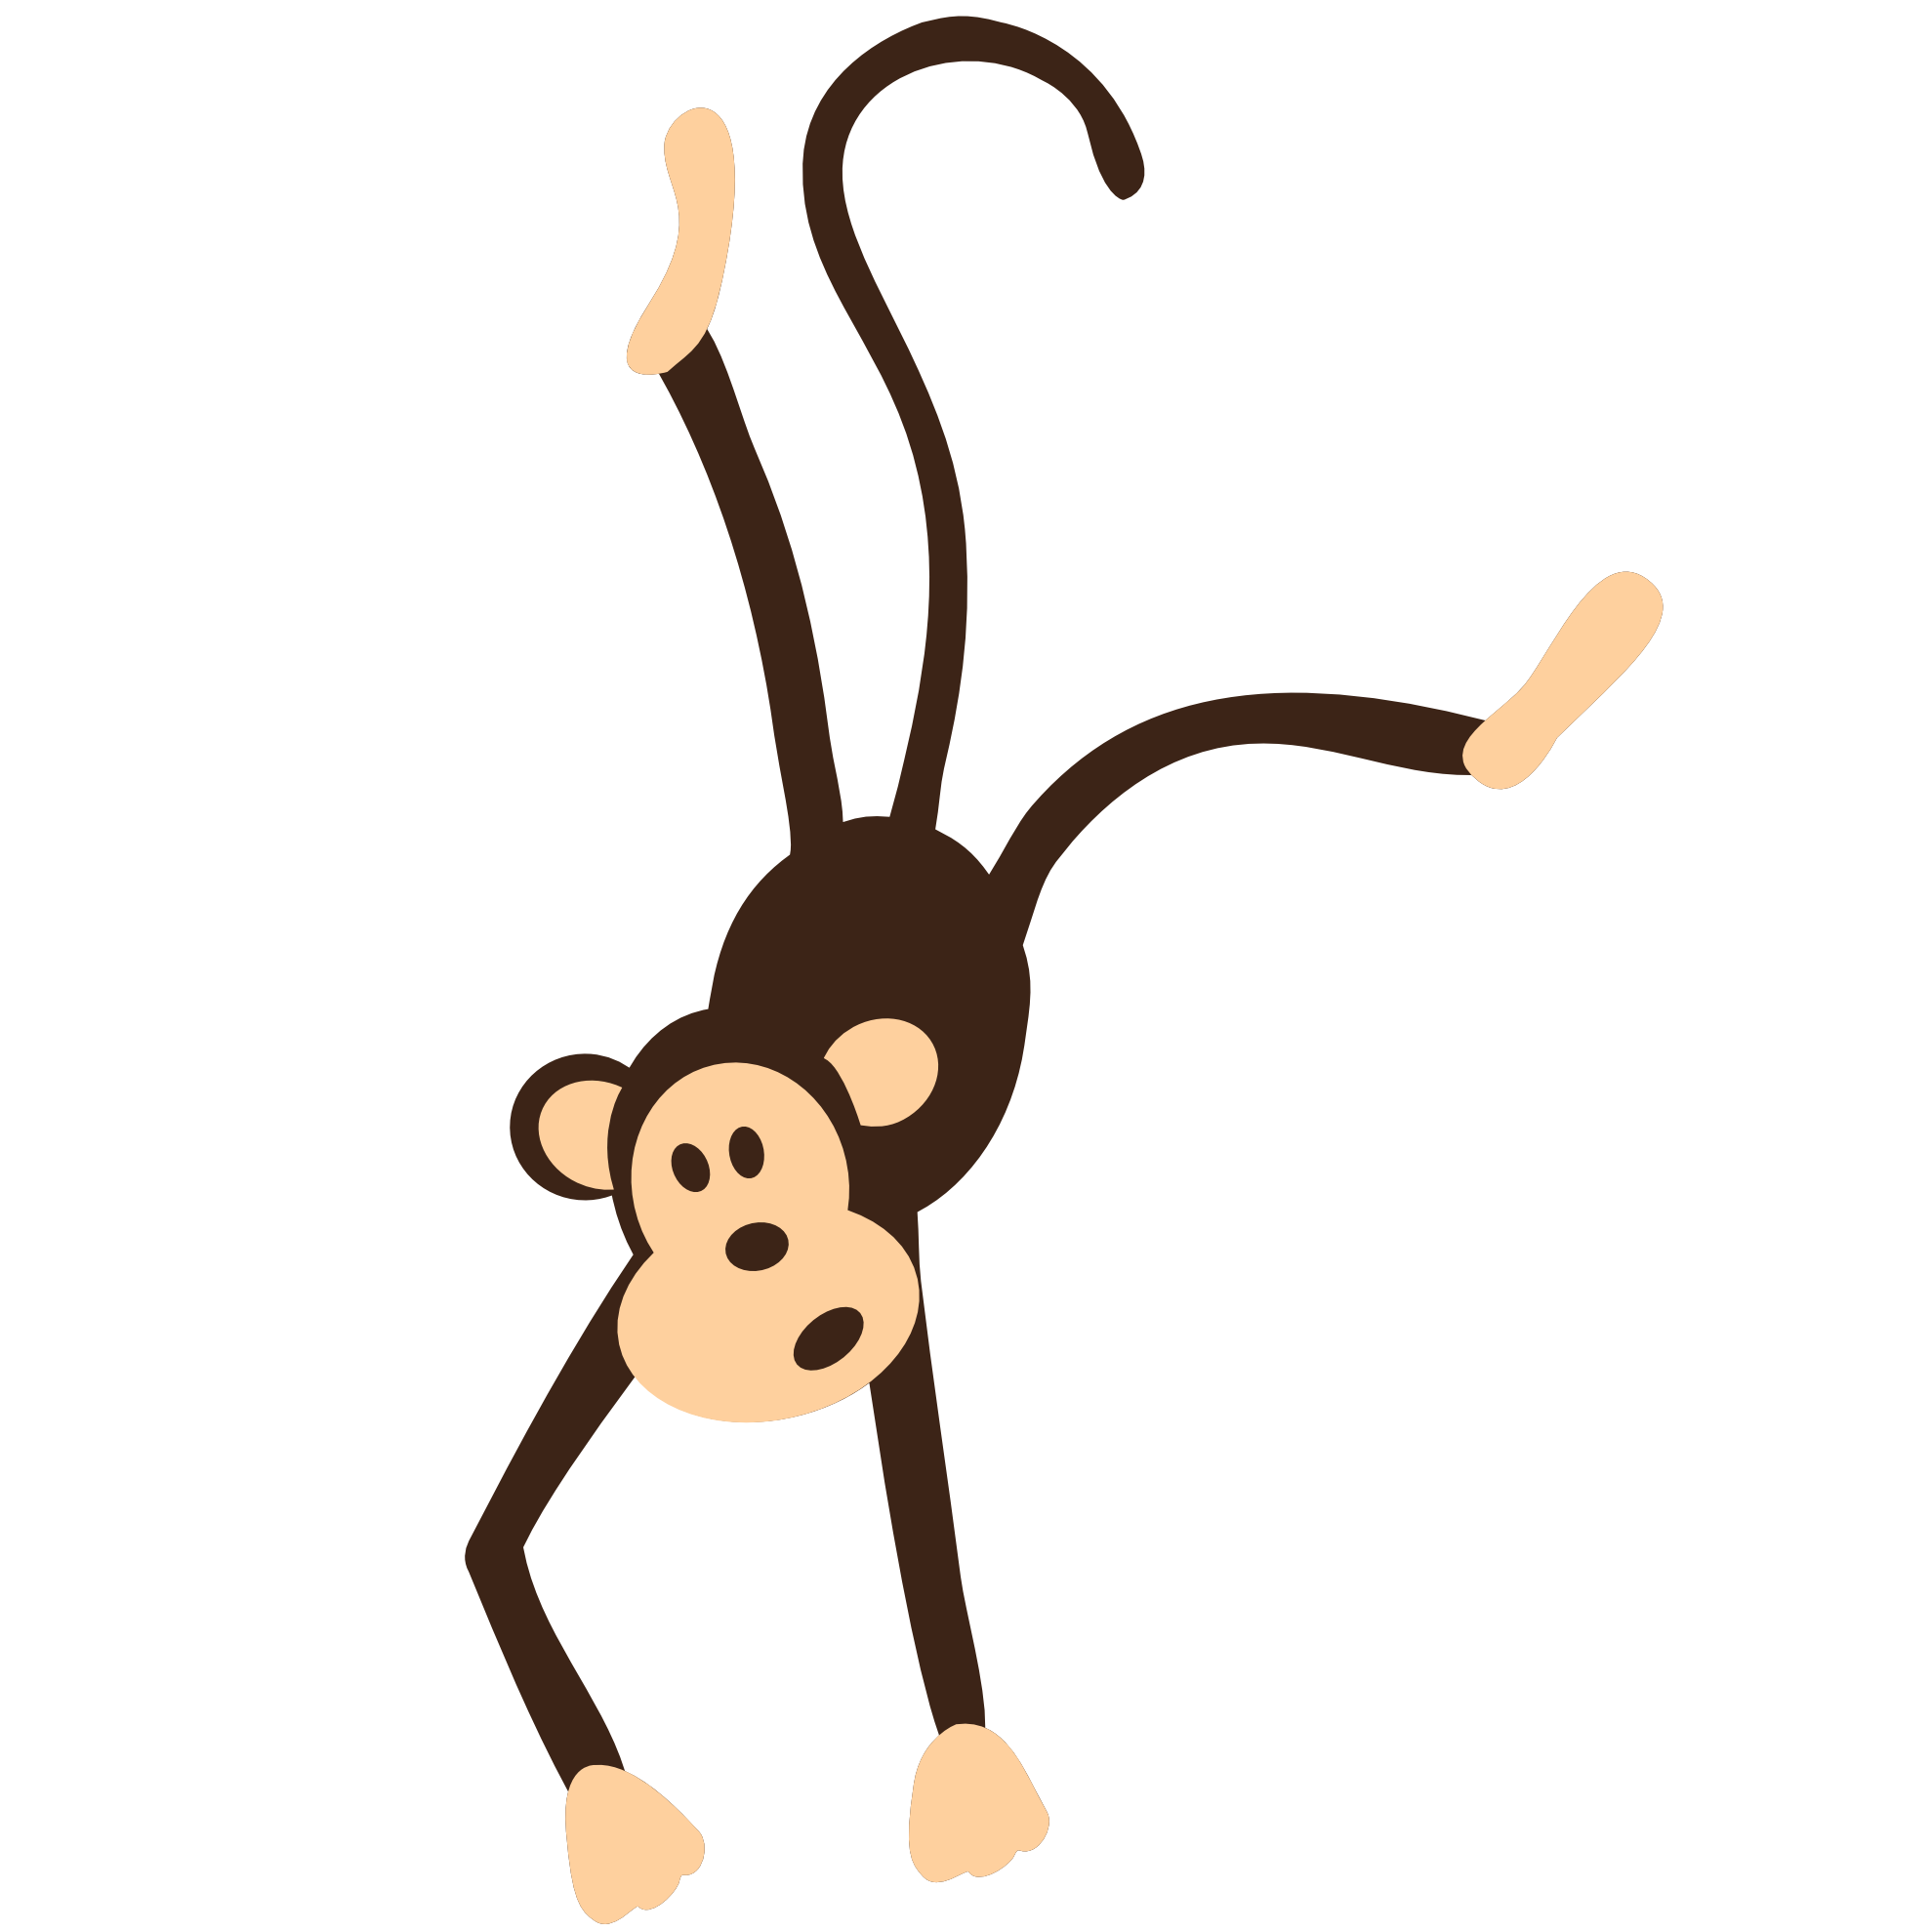 Good clipart transparent background. Monkey png free images